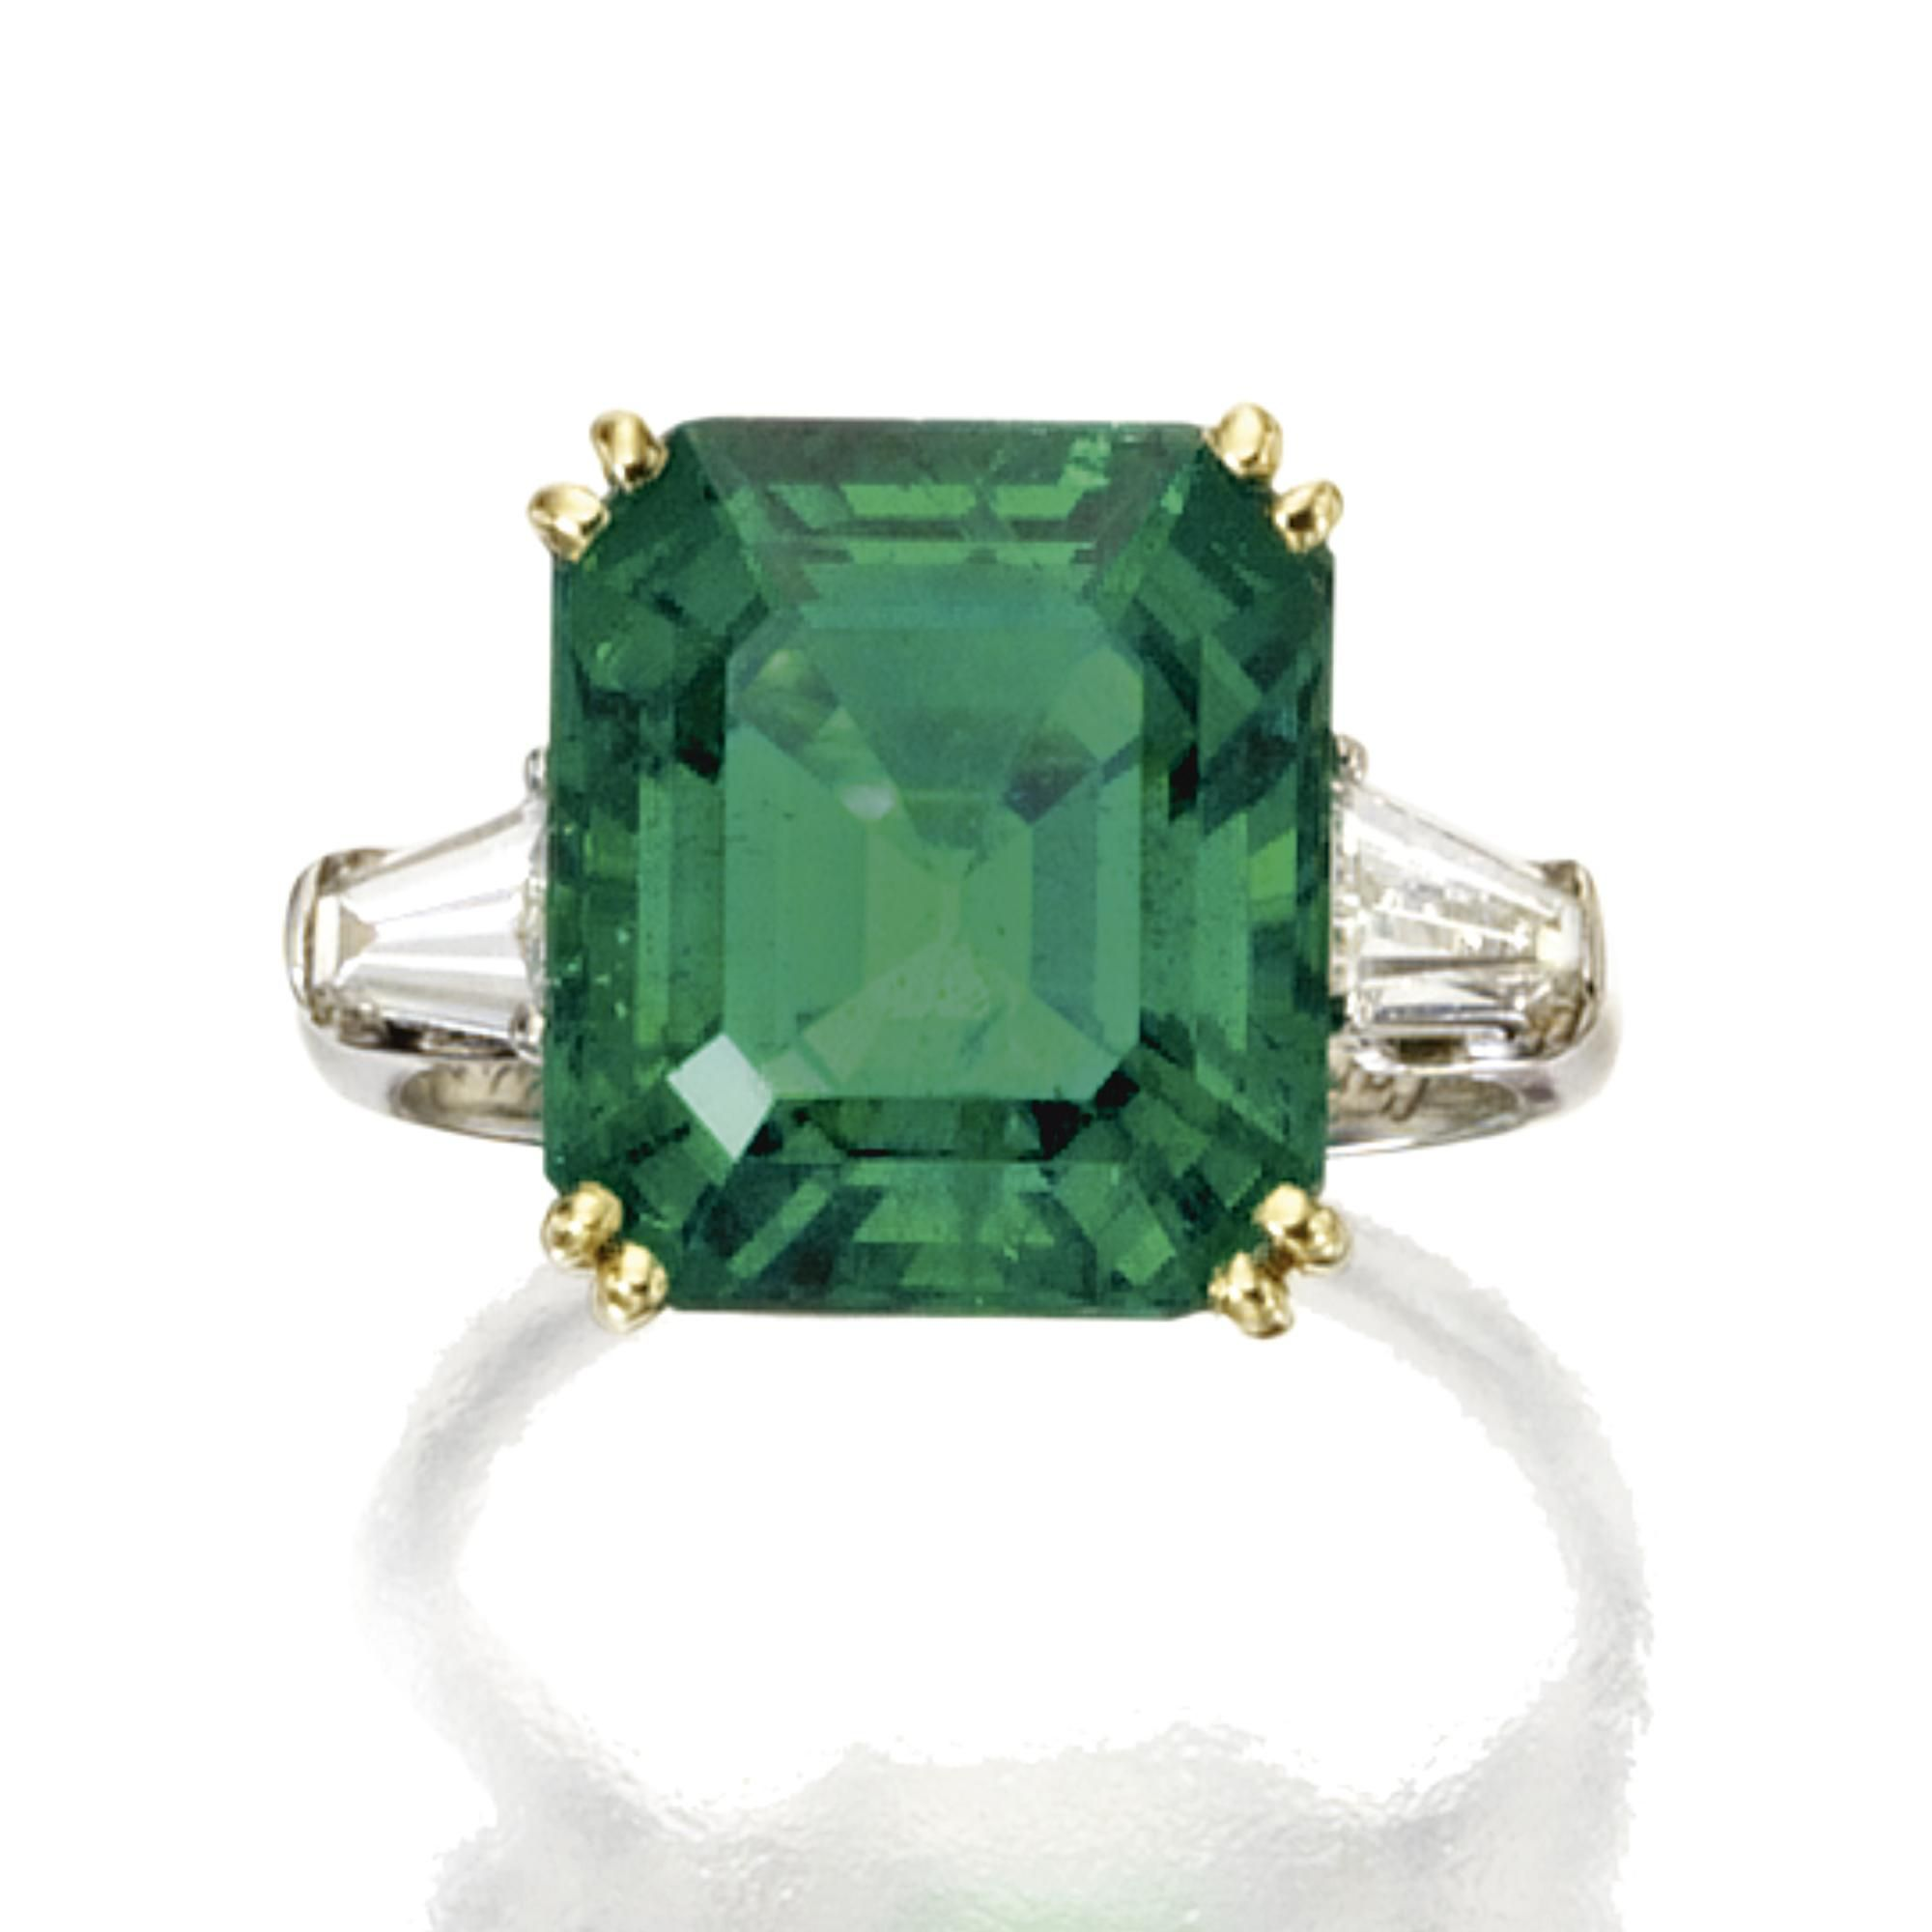 of emerald luxury estate may bazaar jewelry month with celebrate cartier wp the